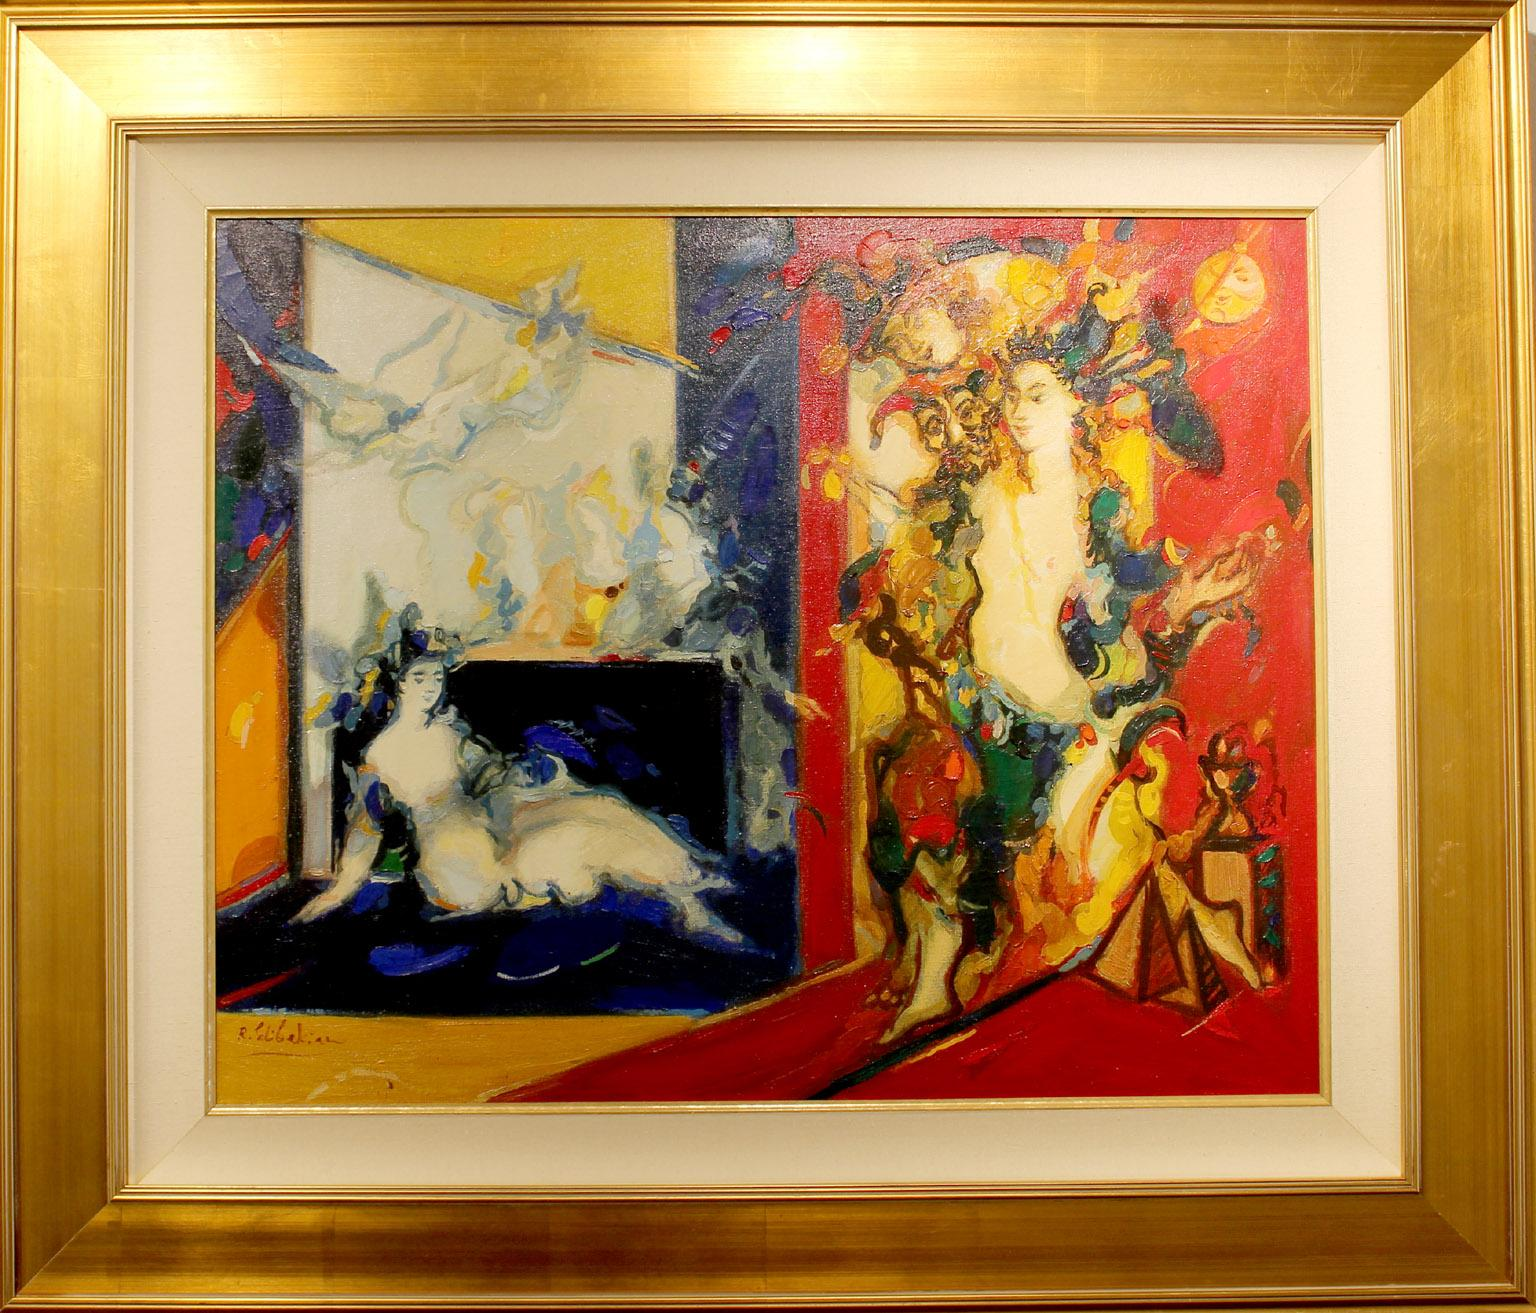 """Spectacle, year 2002, 26""""x32"""" oil on canvas, framed size 36x42 in."""